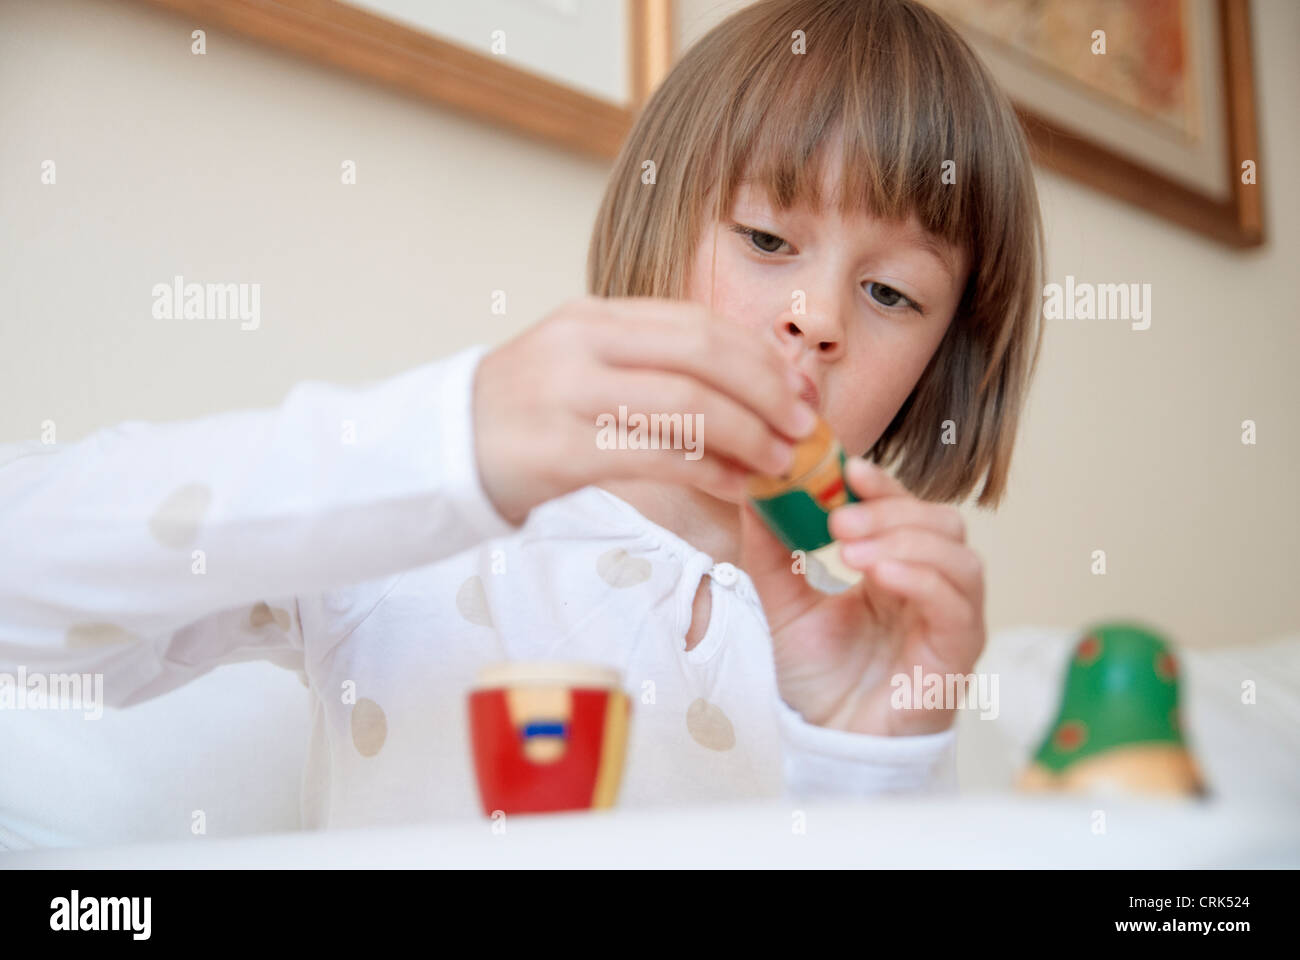 Girl playing with nesting doll - Stock Image